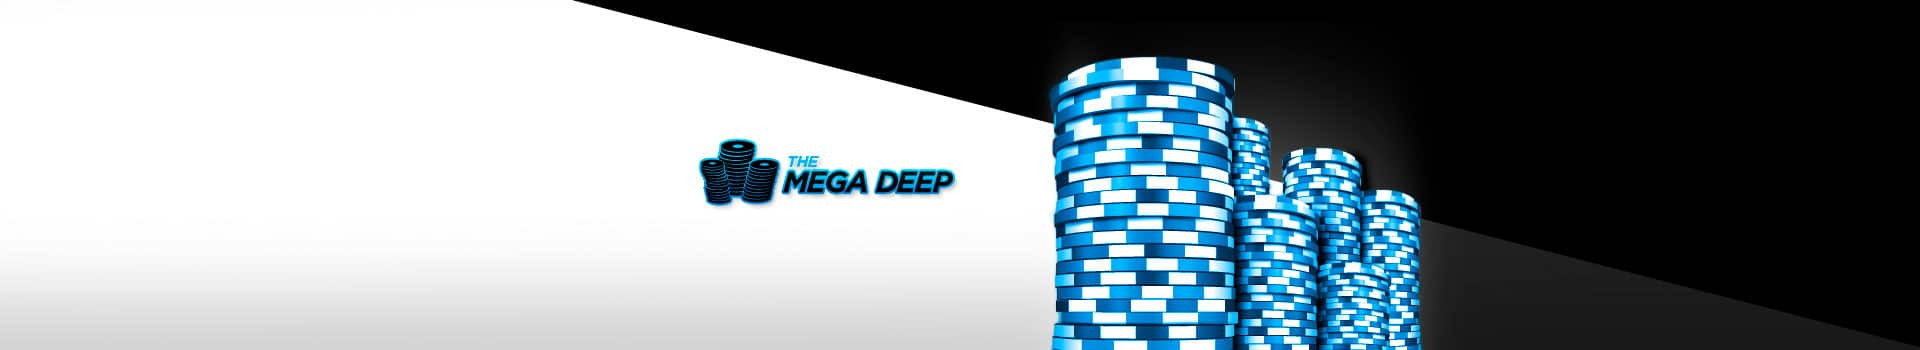 Турнир 888Poker Mega Deep